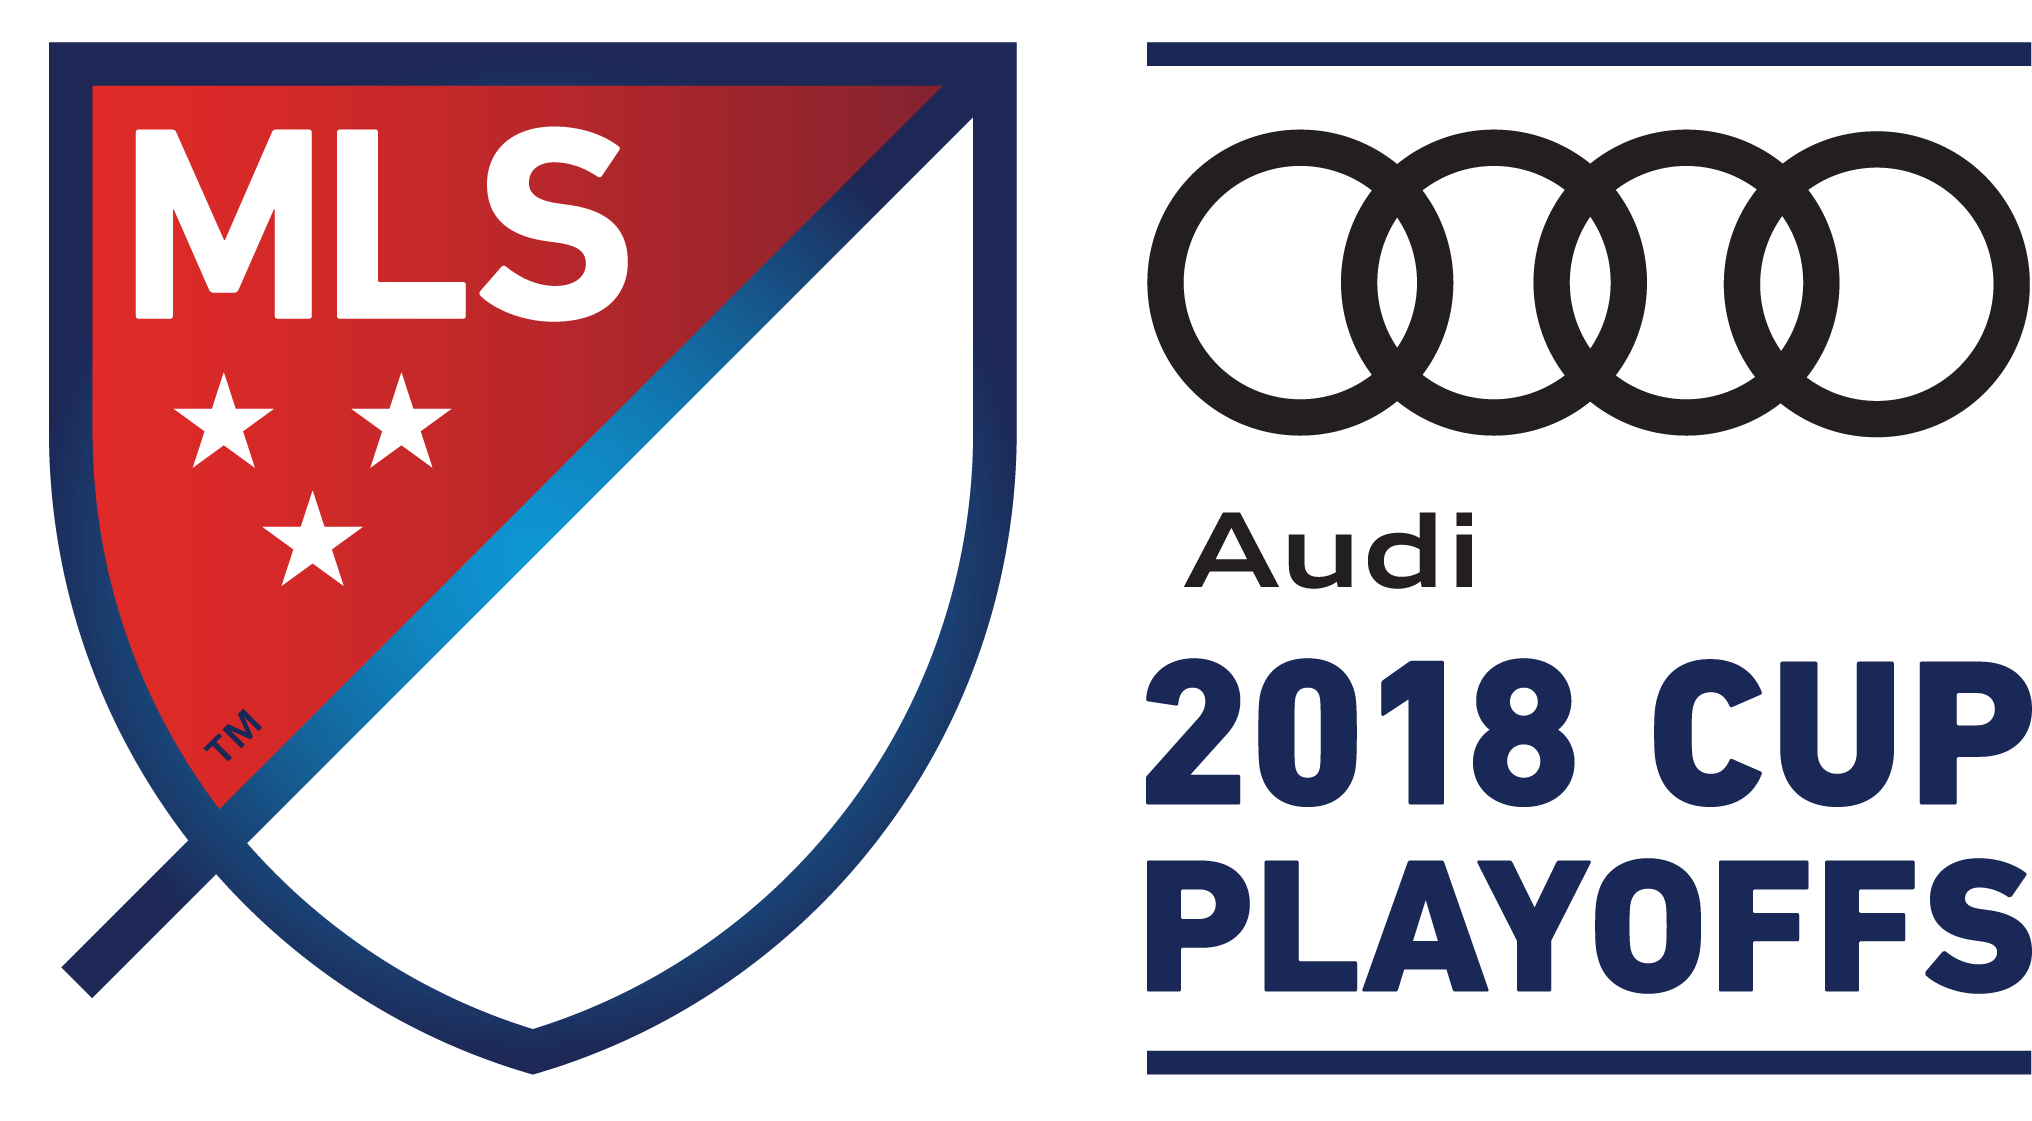 2018 MLS Cup Playoffs - Wikipedia